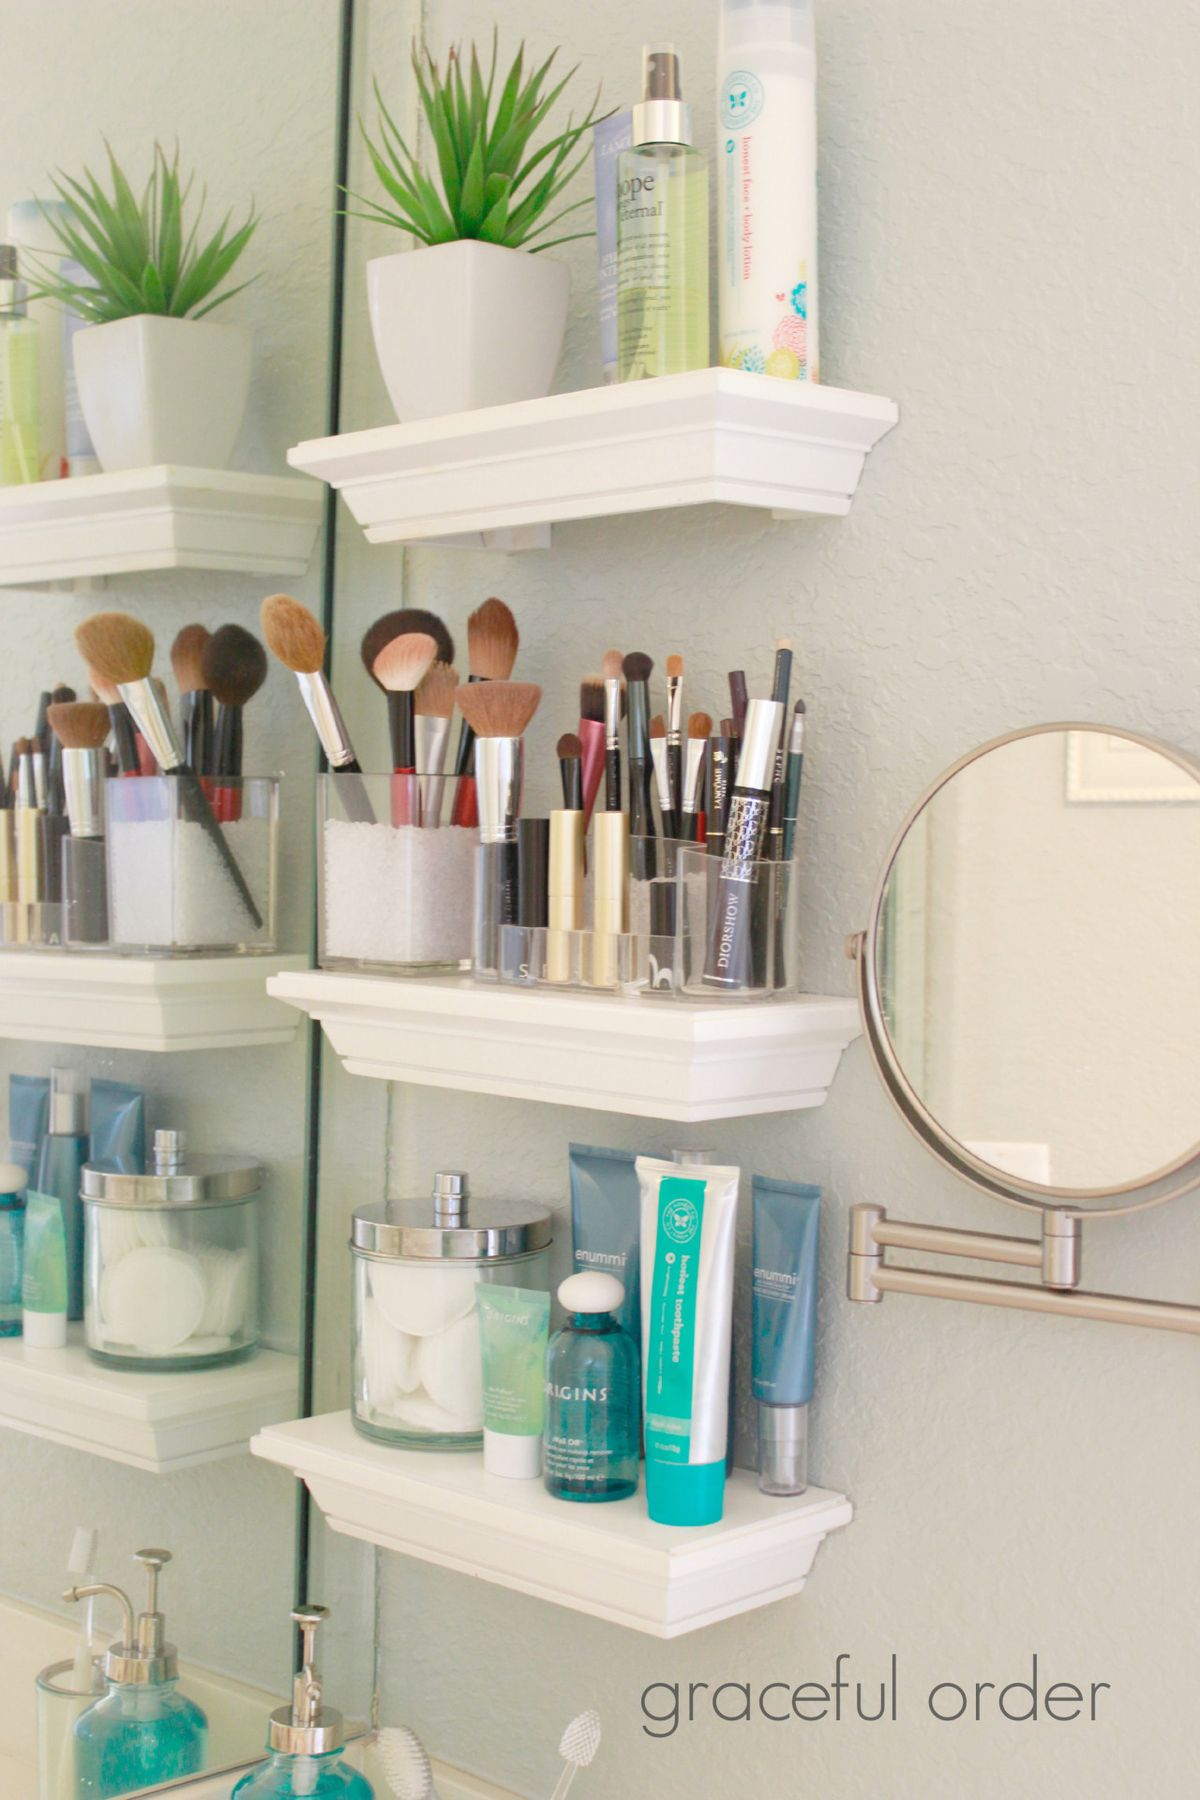 Makeup Storage Ideas Bathroom - Small bathroom makeup storage ideas